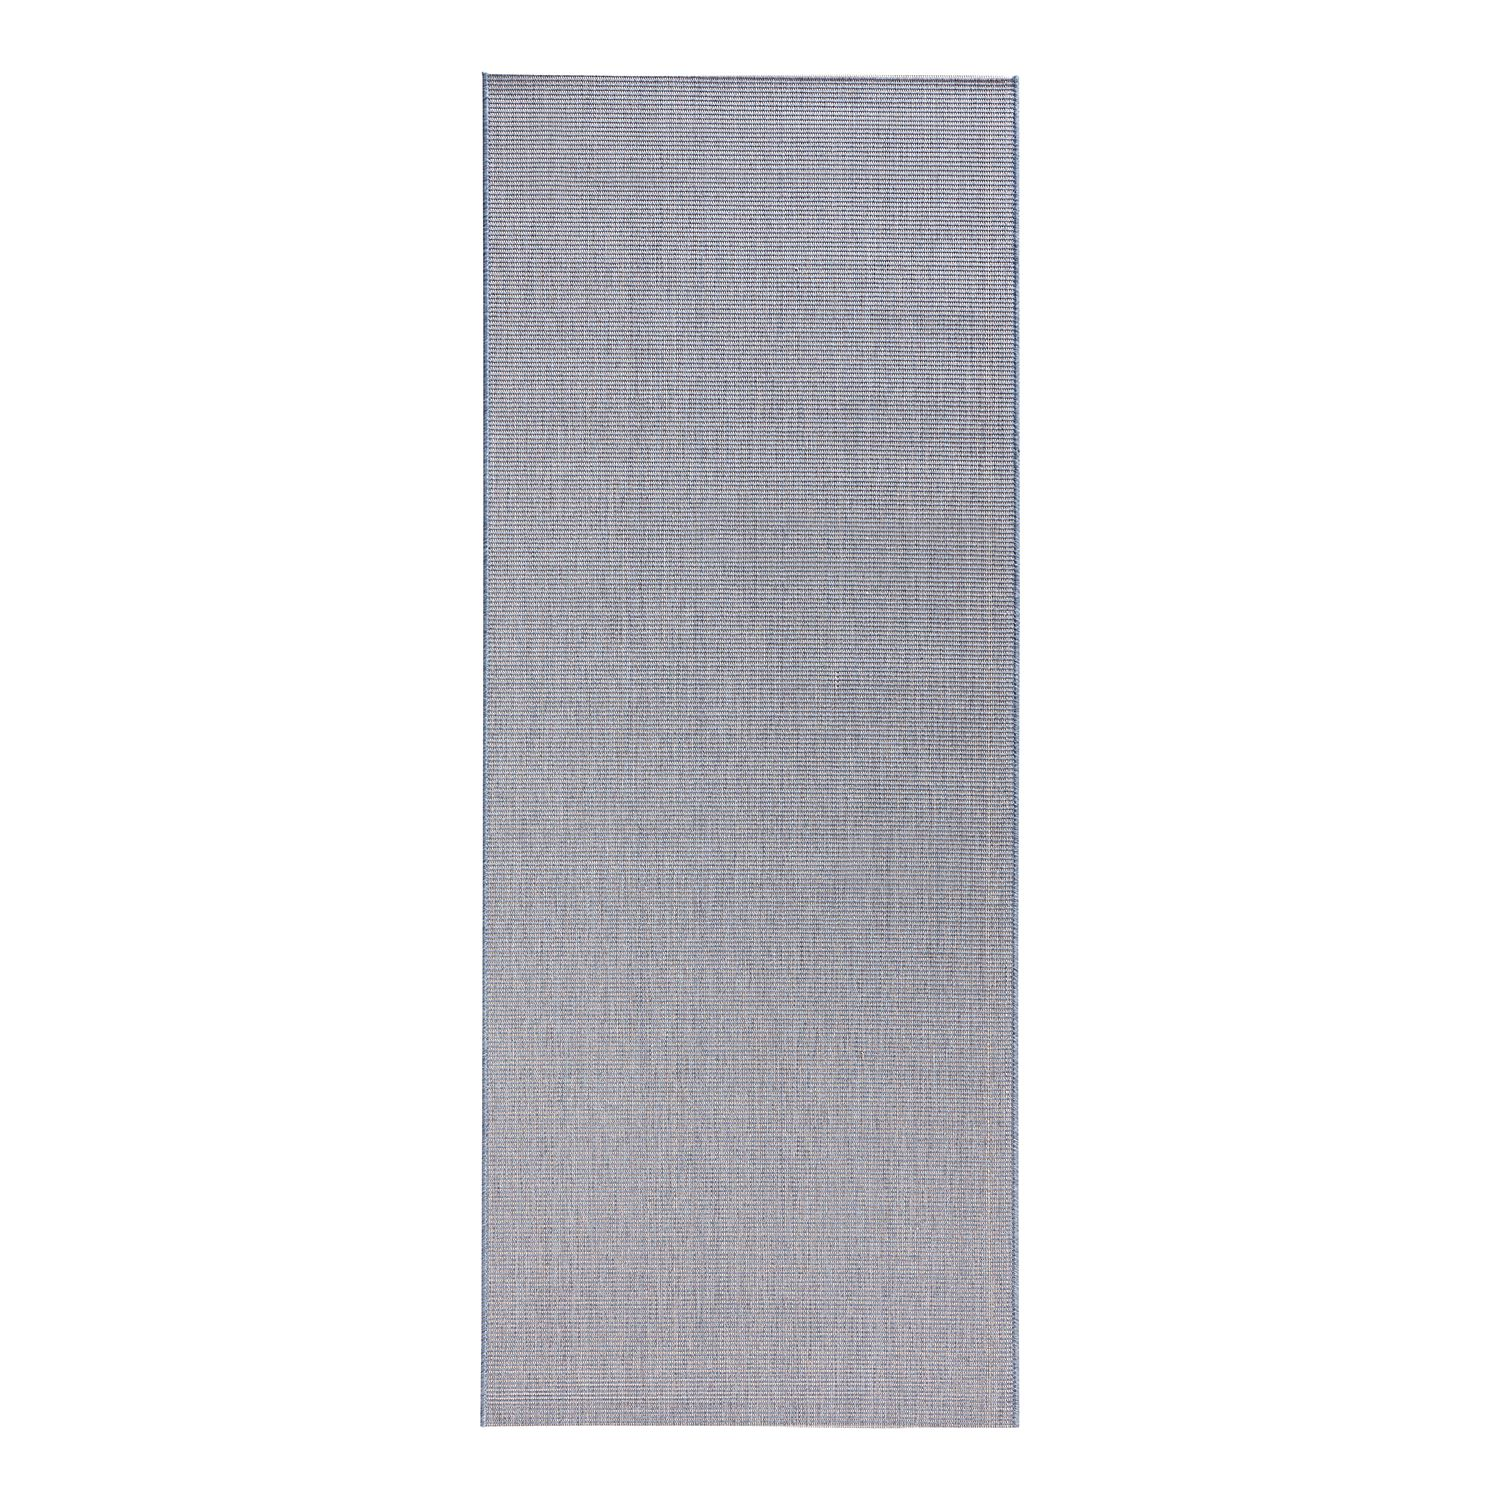 Bougari tritooshop Tapis synthetique exterieur